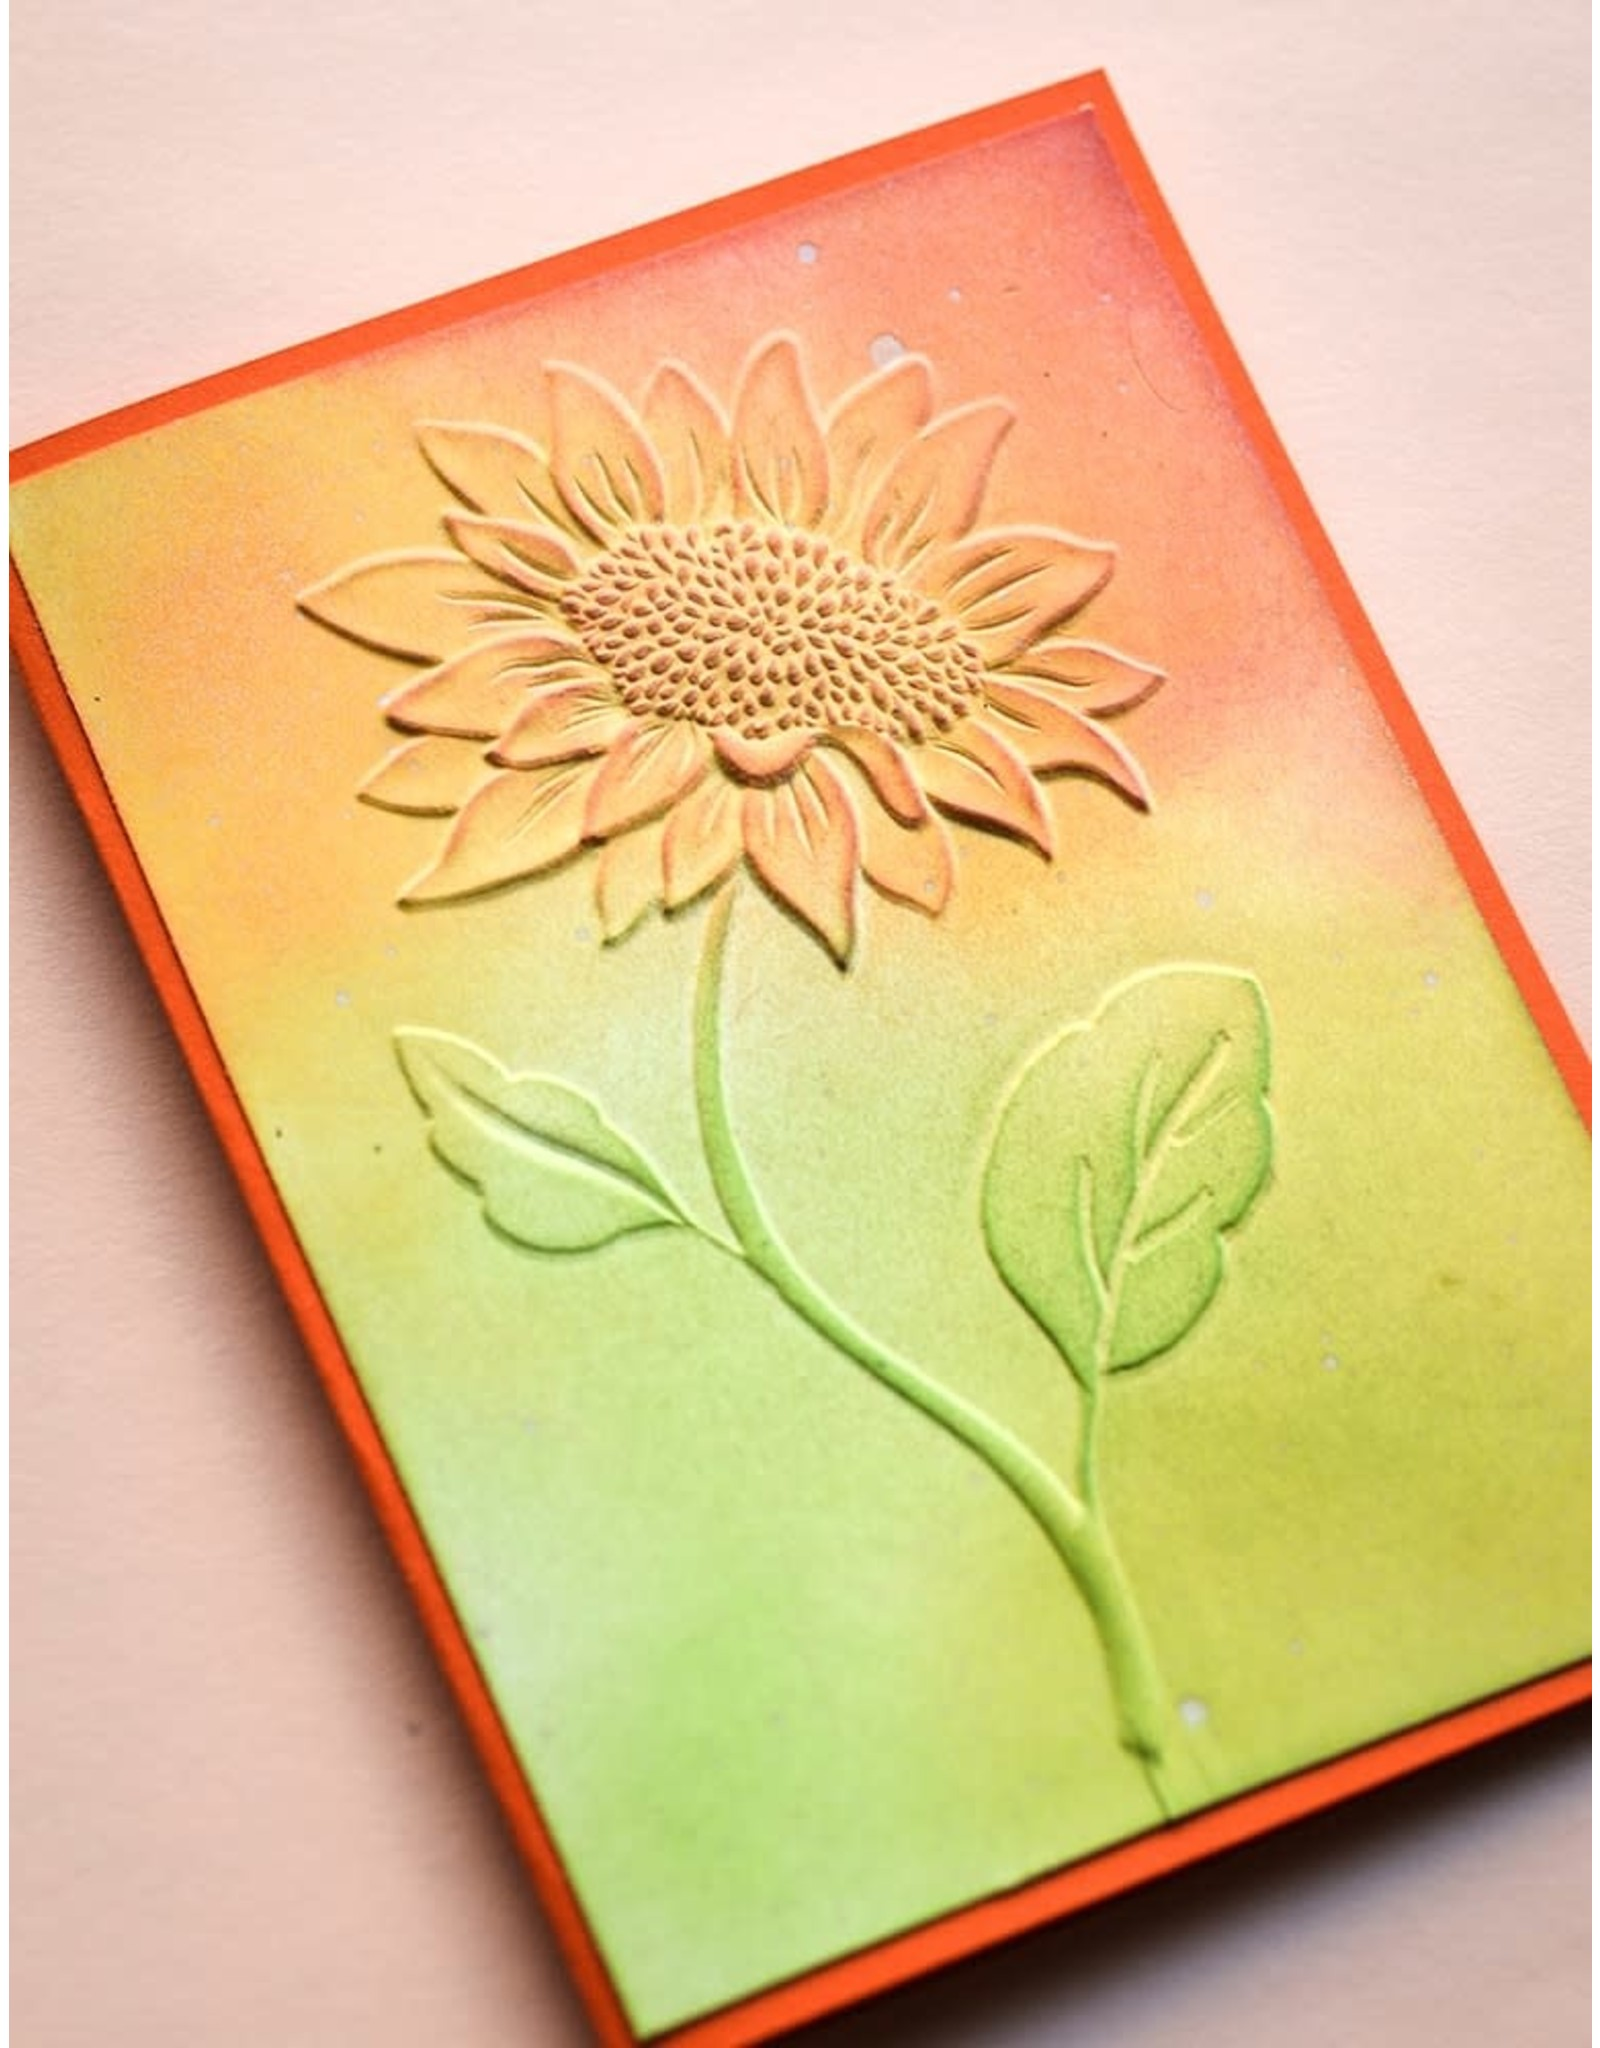 Memory Box Magnificent Sunflower - 3D Embossing Folder